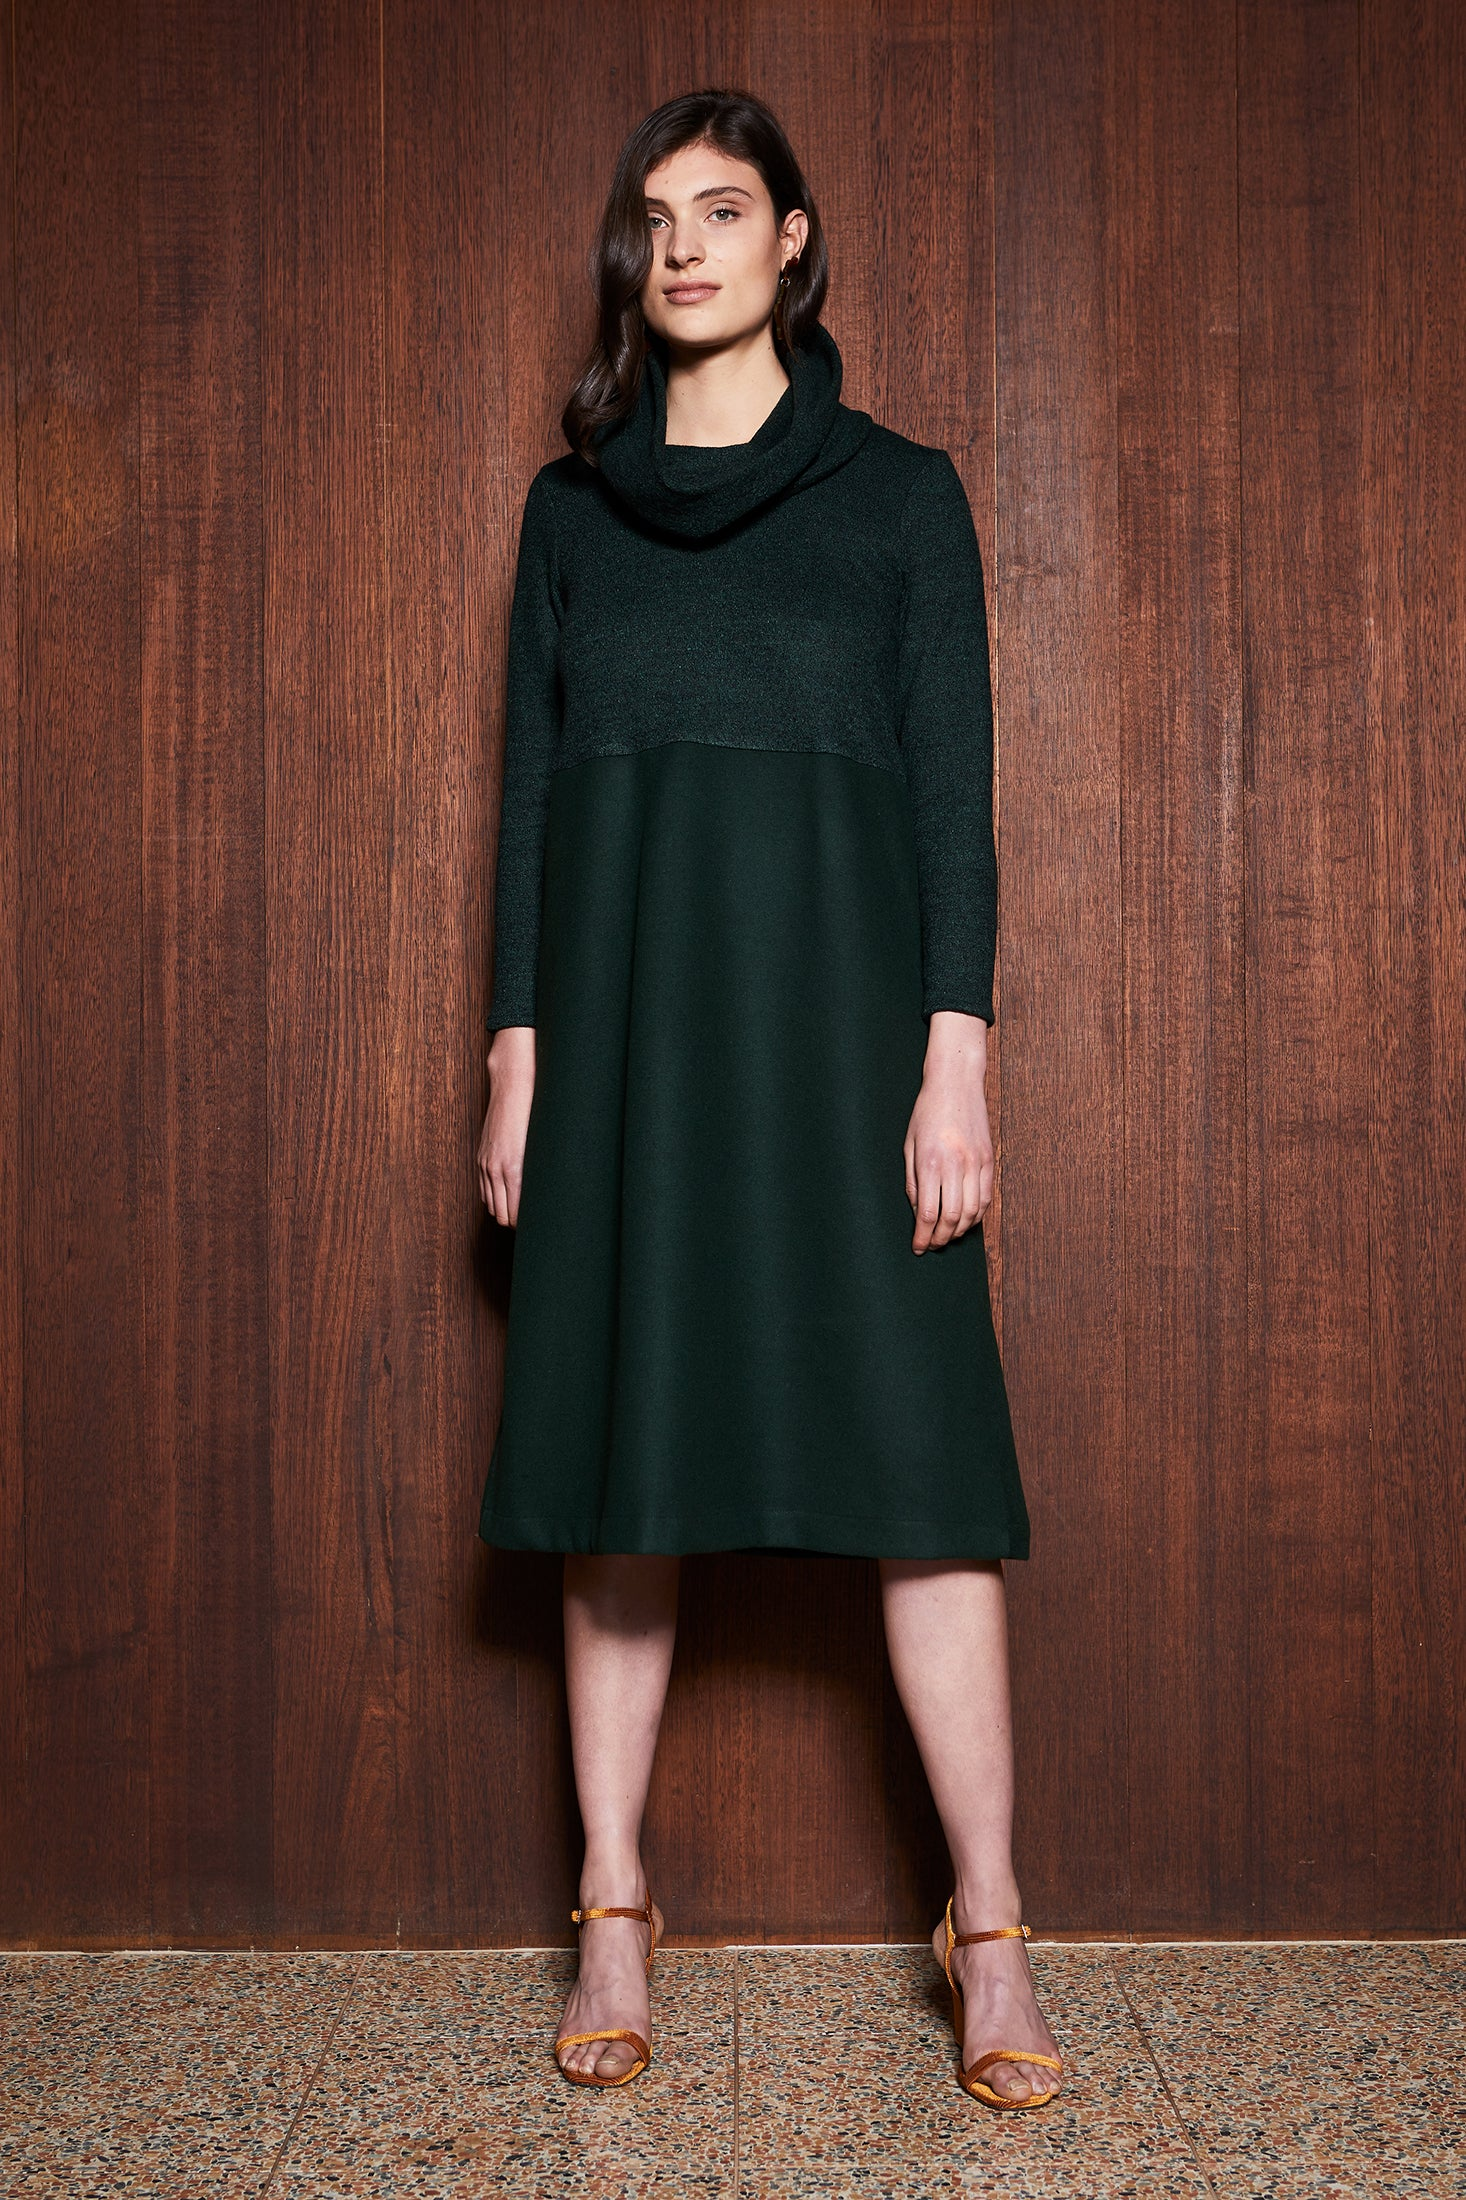 keegan Australian made Women's Clothing in Melbourne Australia Fern Dress Green Wool